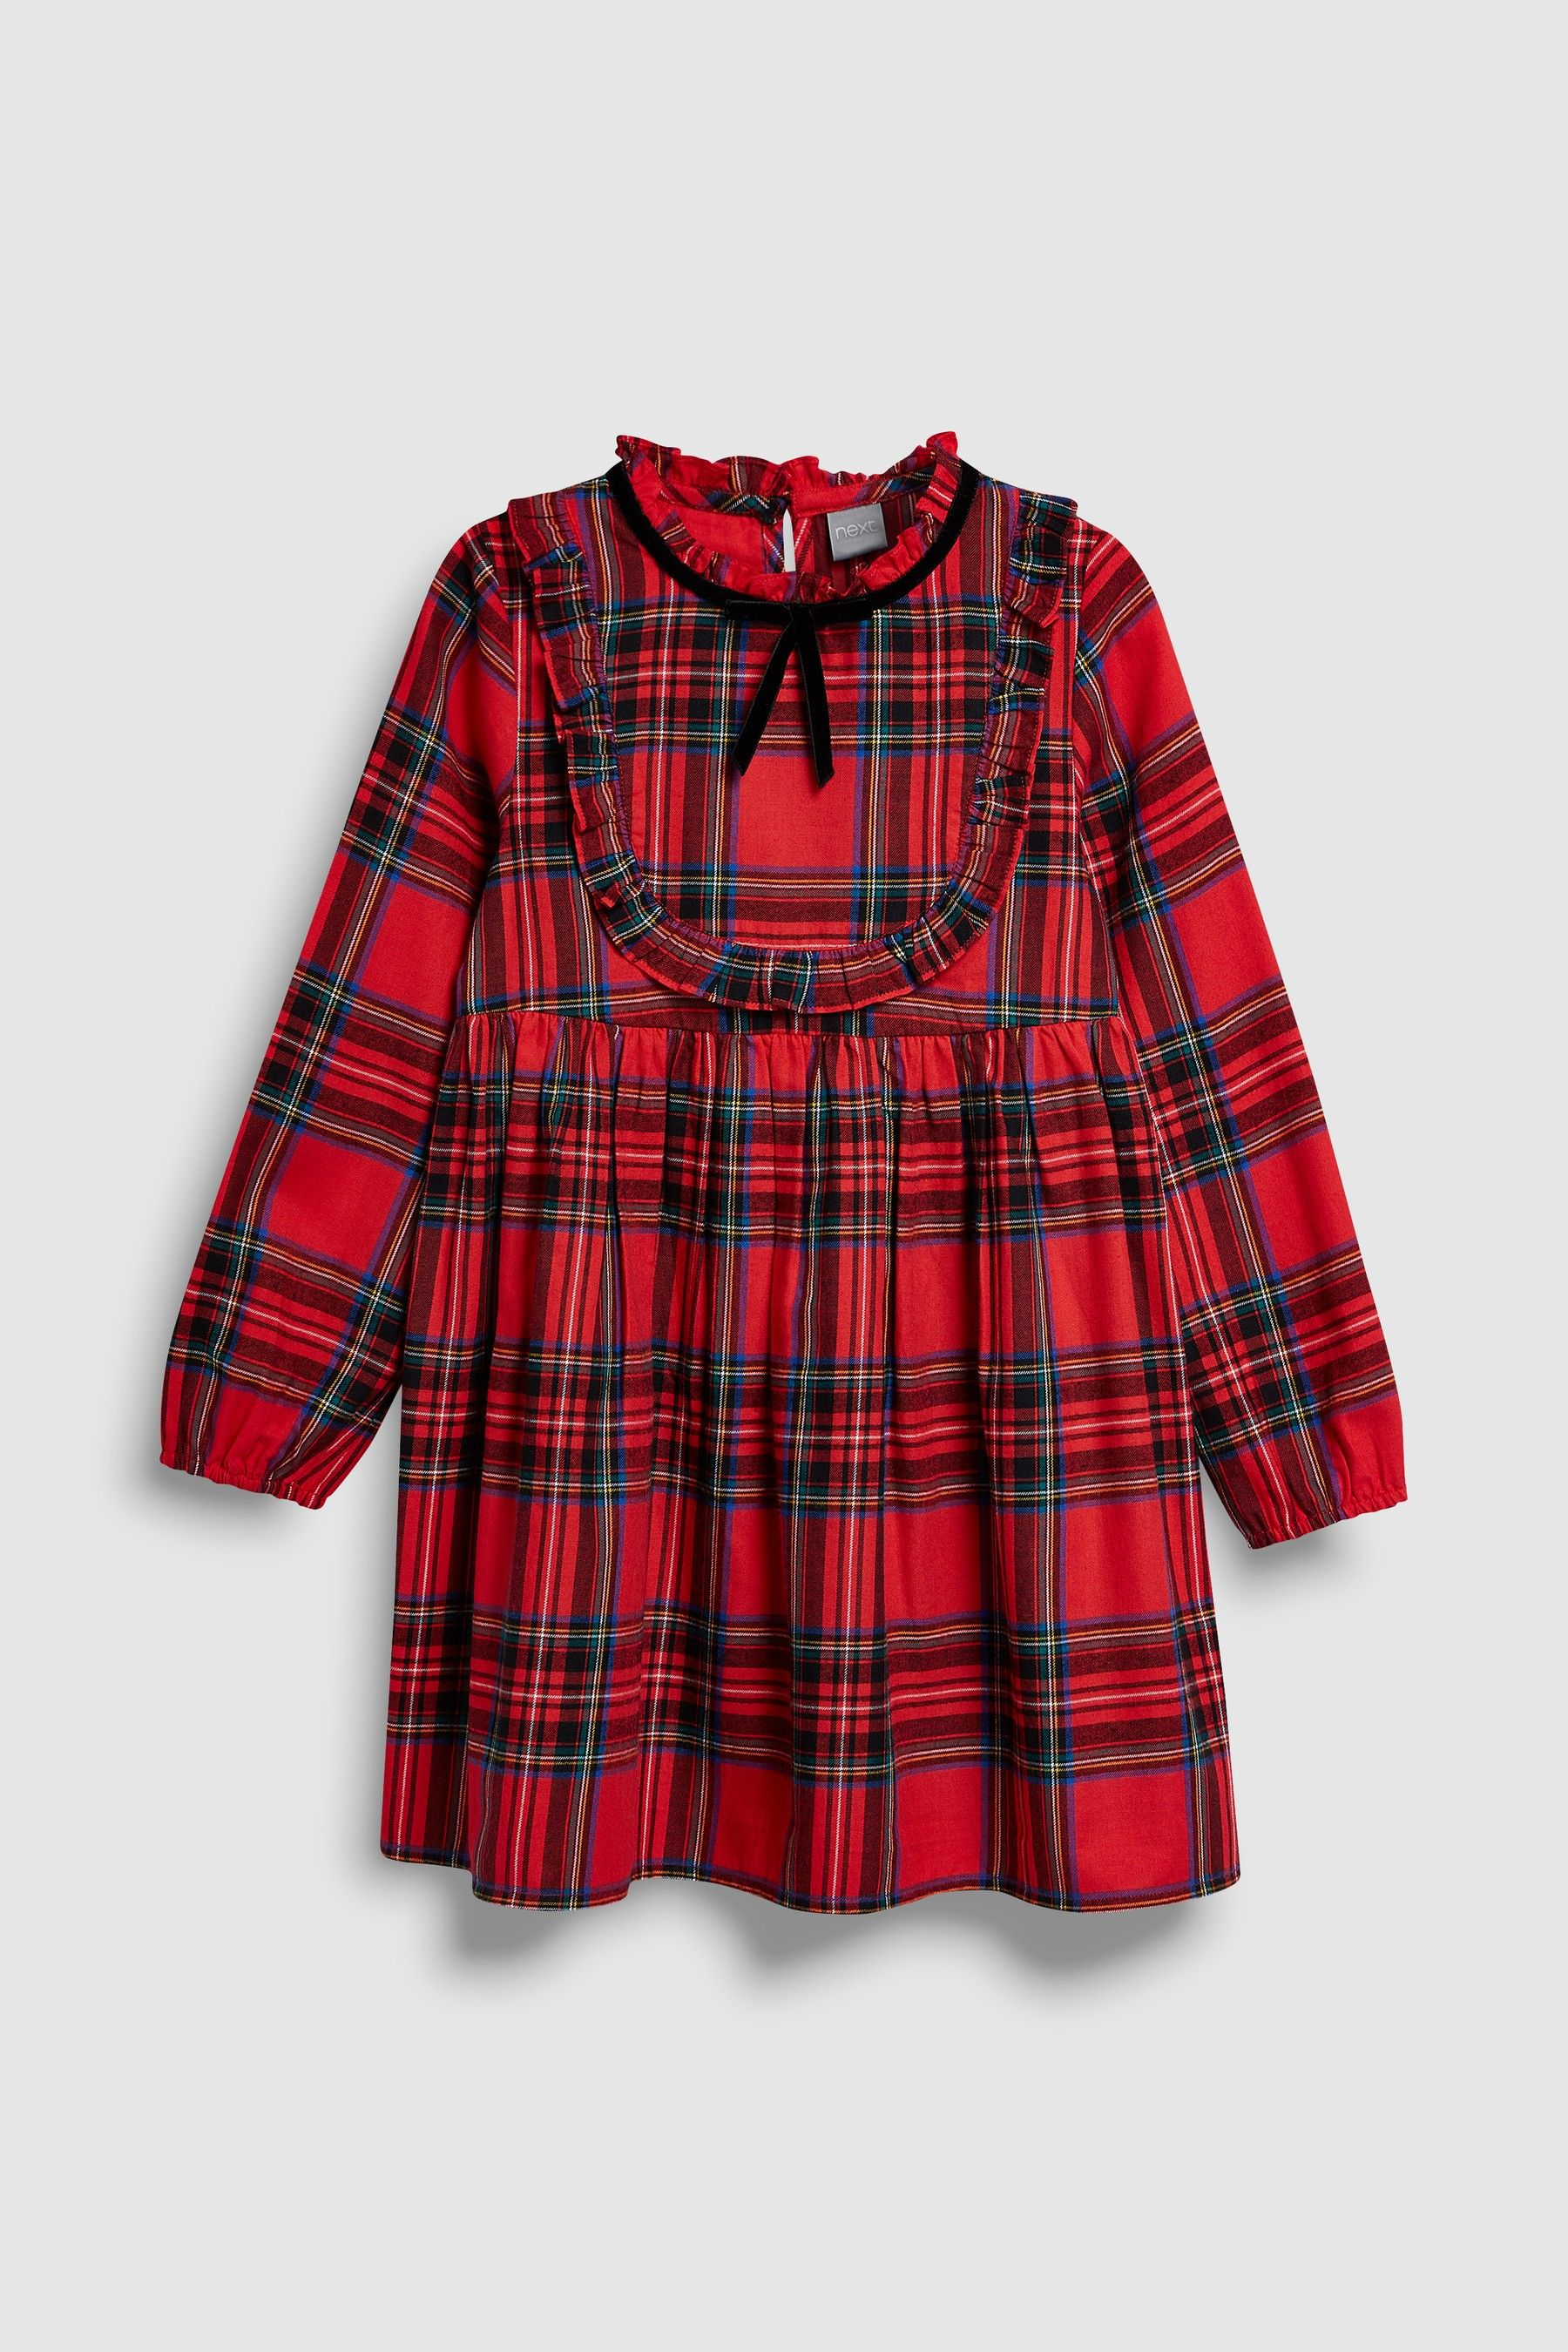 bd49add4eb49 Buy Red Girls Tartan Check Dress (3-16yrs) from the Next UK online shop